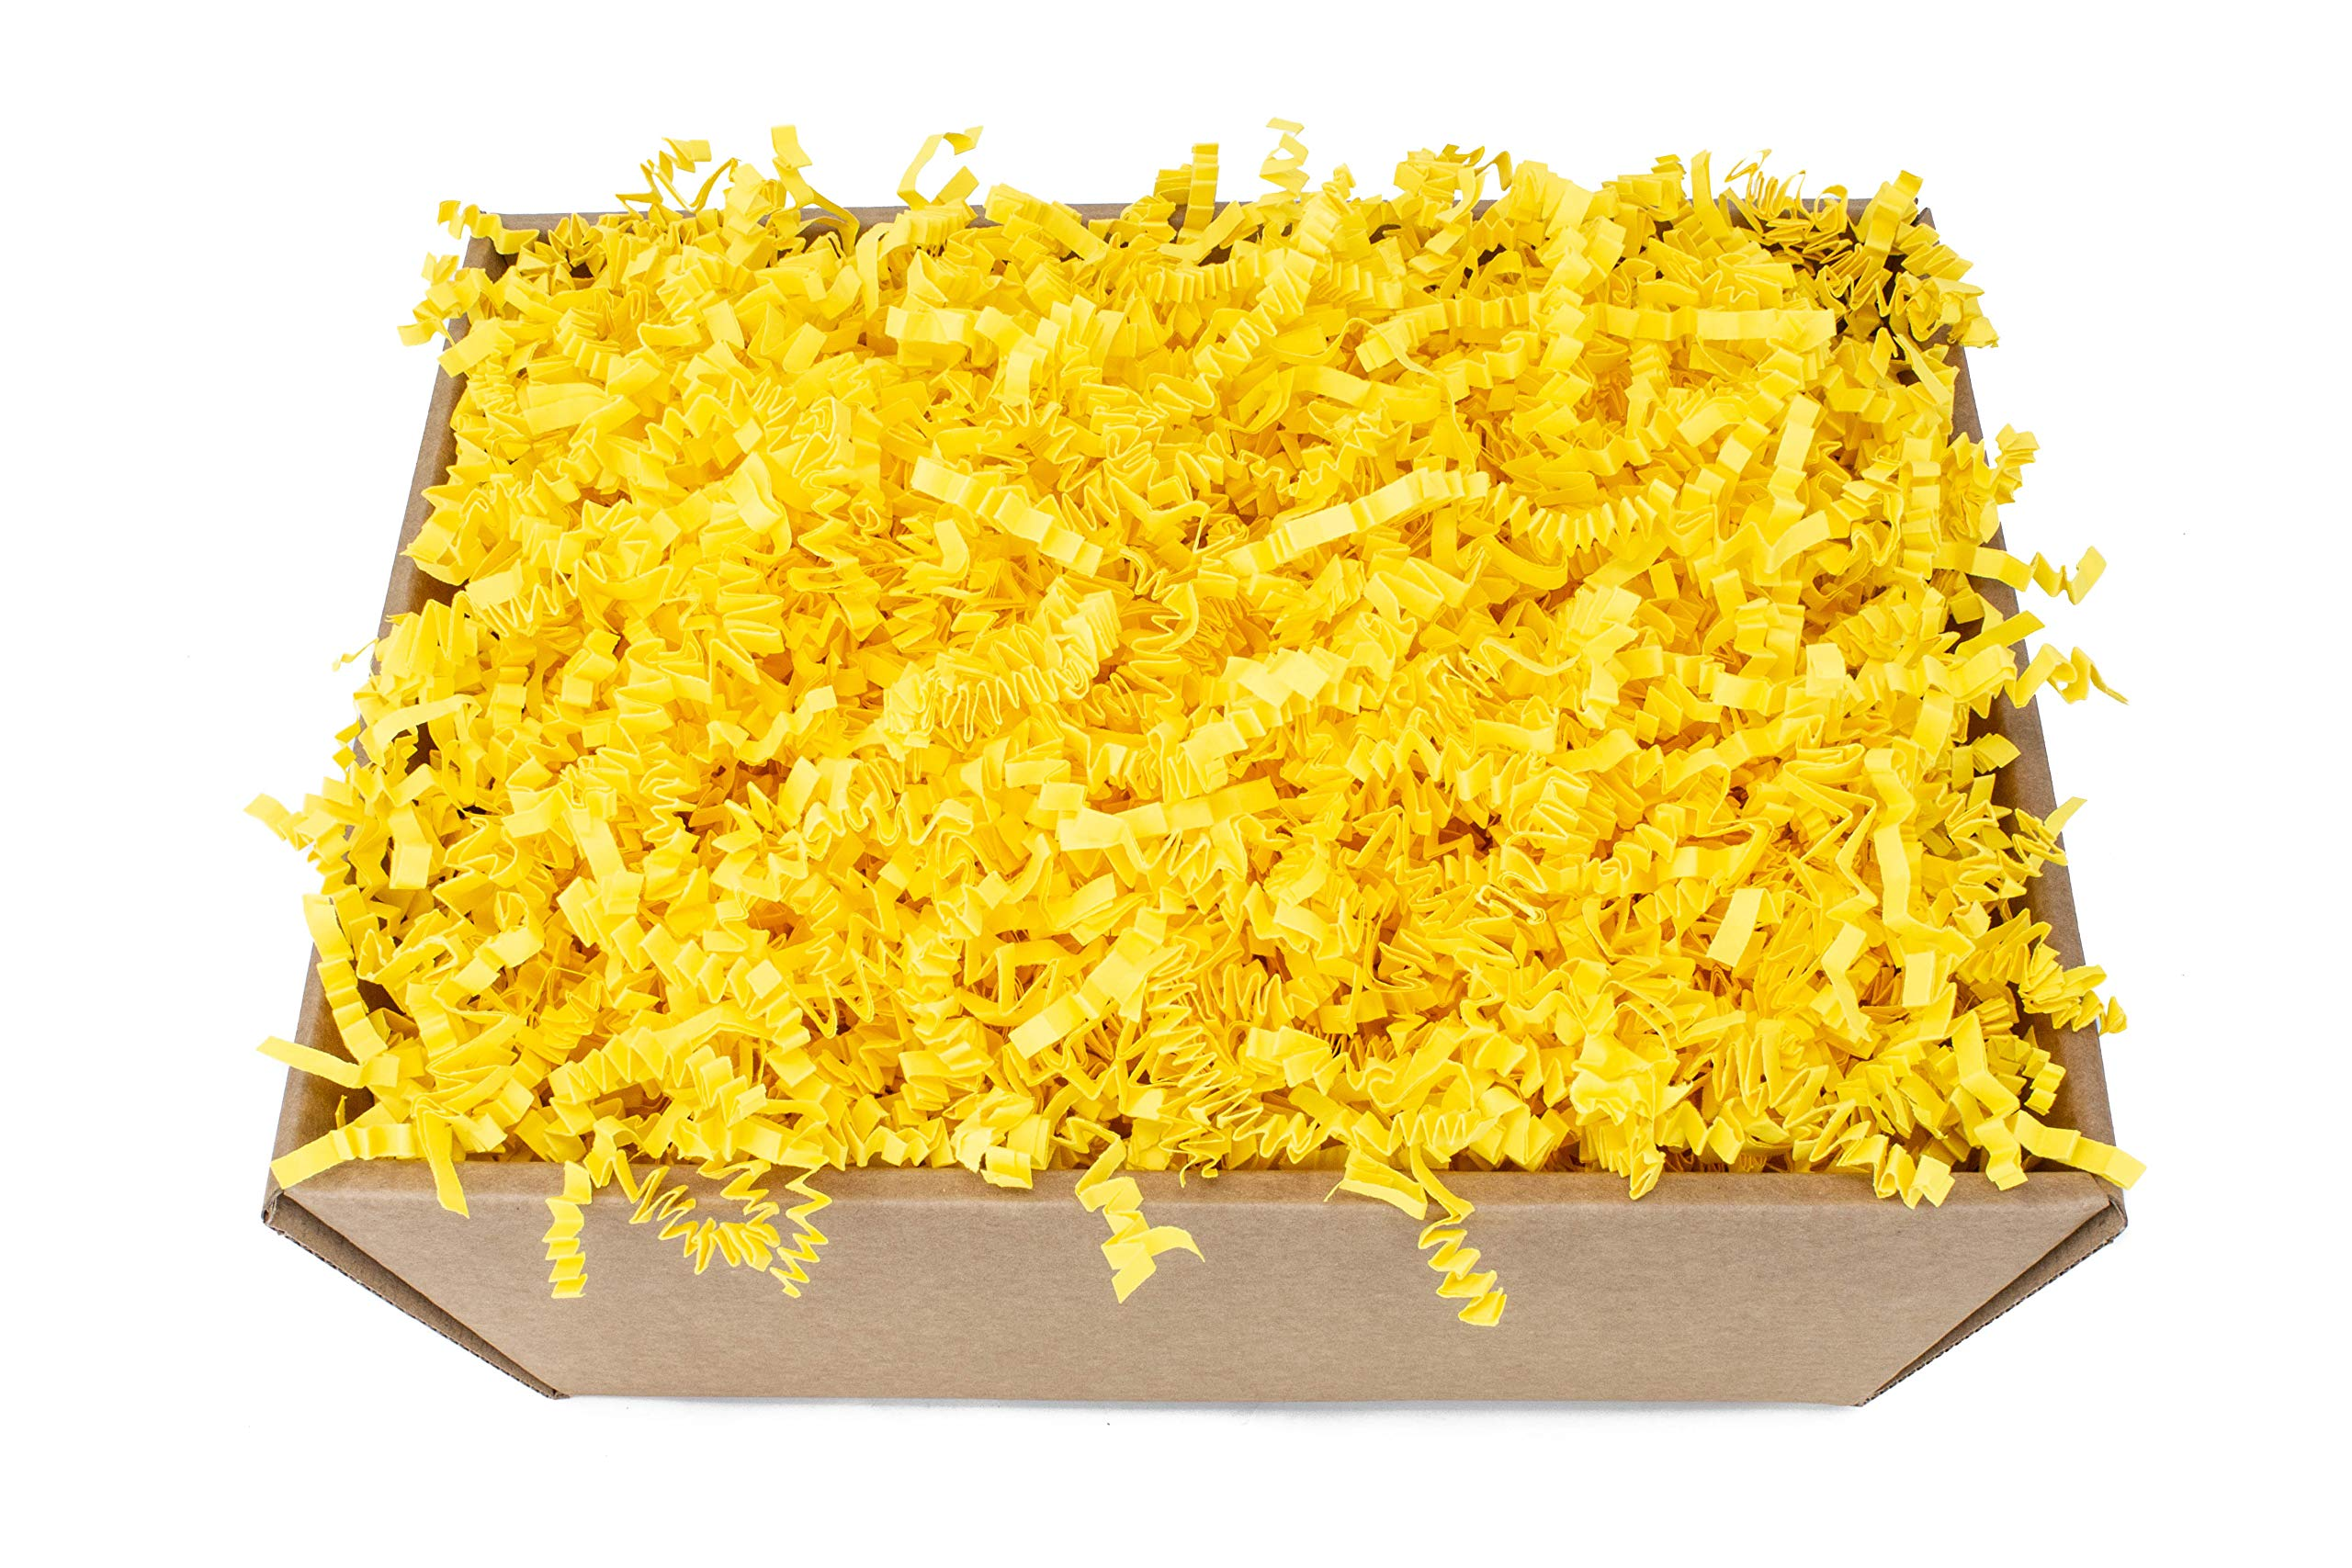 Yellow Zig Zag Shredded Paper - 1 kg - Ideal for Hamper Filling and Gift Packaging